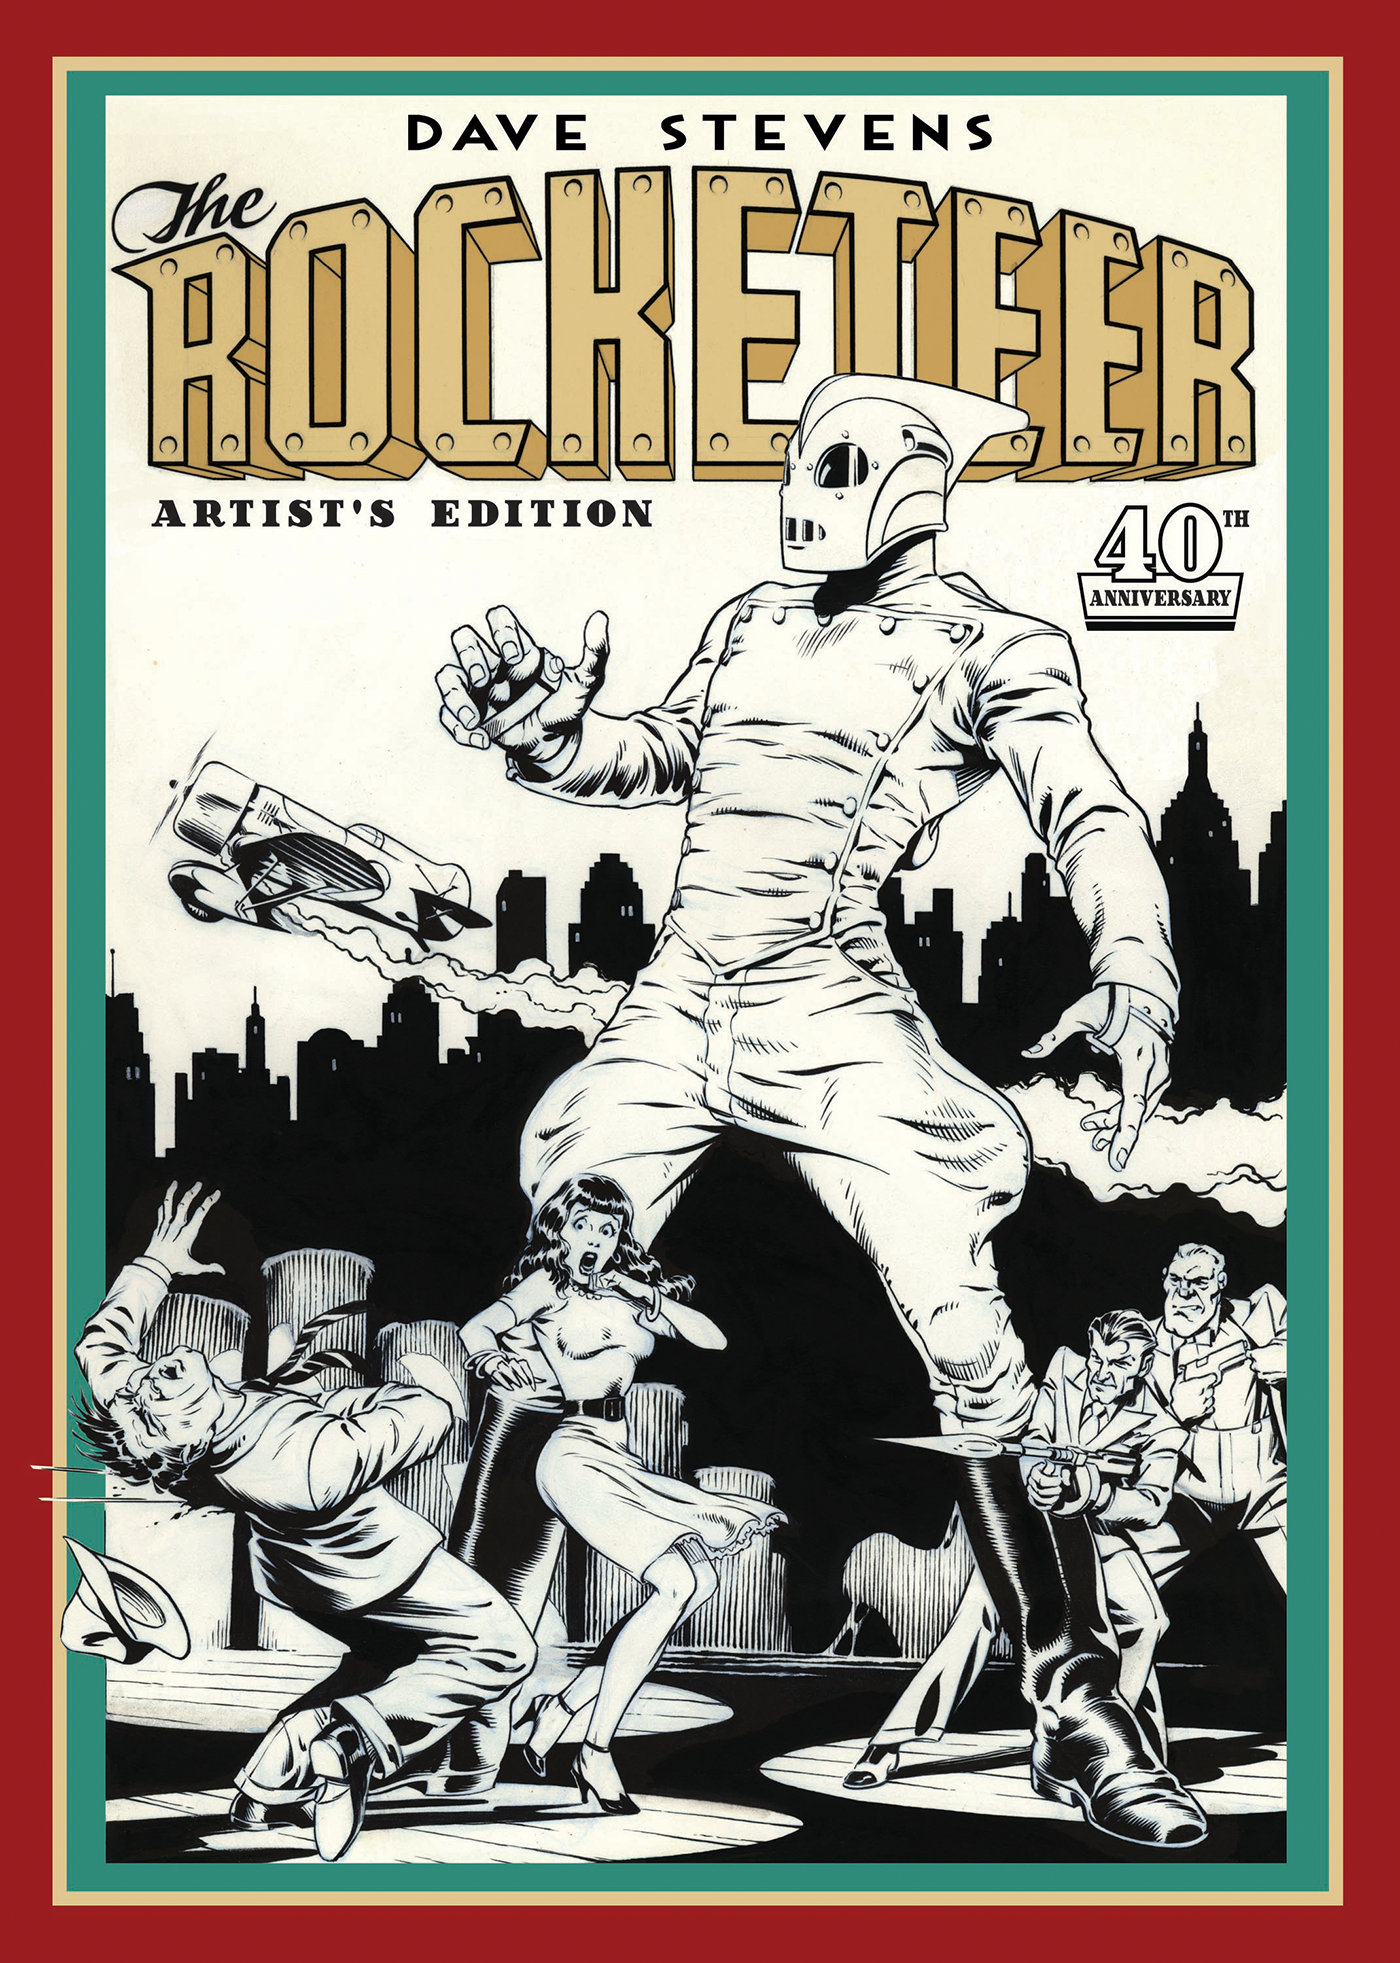 Dave Stevens The Rocketeer 40th Anniversary Artists Edition cover